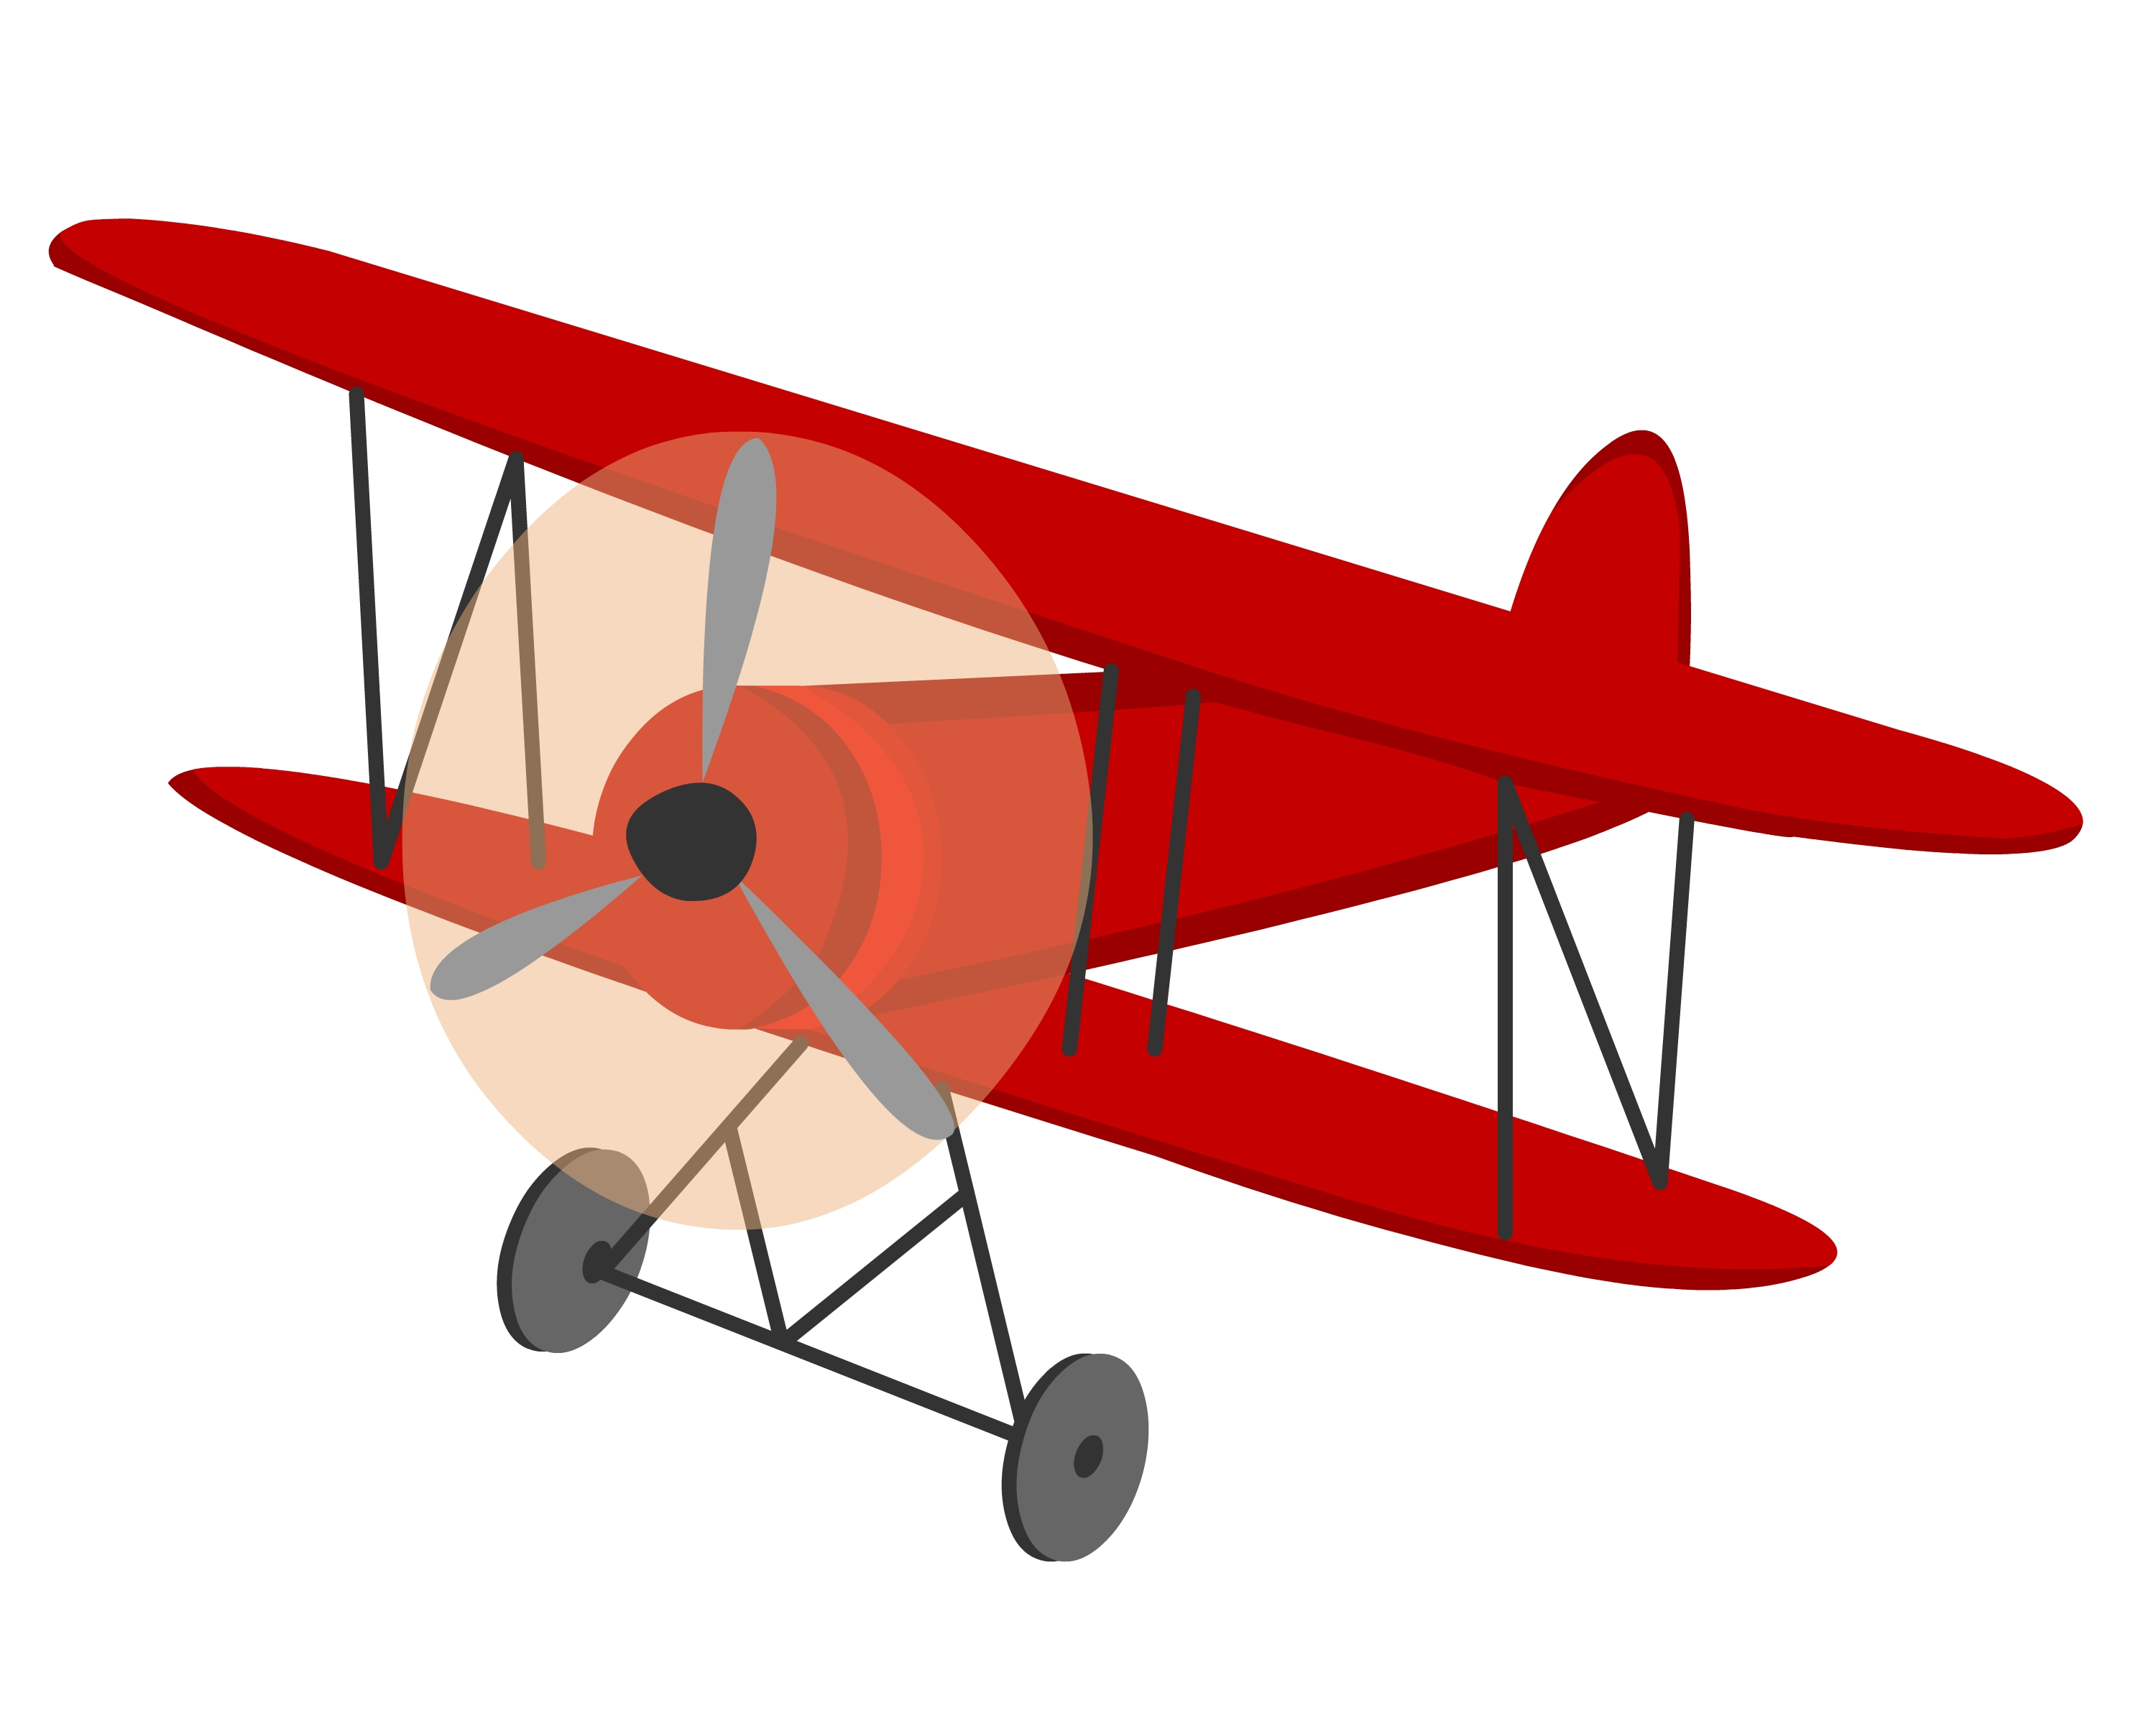 red airplane clipart airplane red Clip Art.